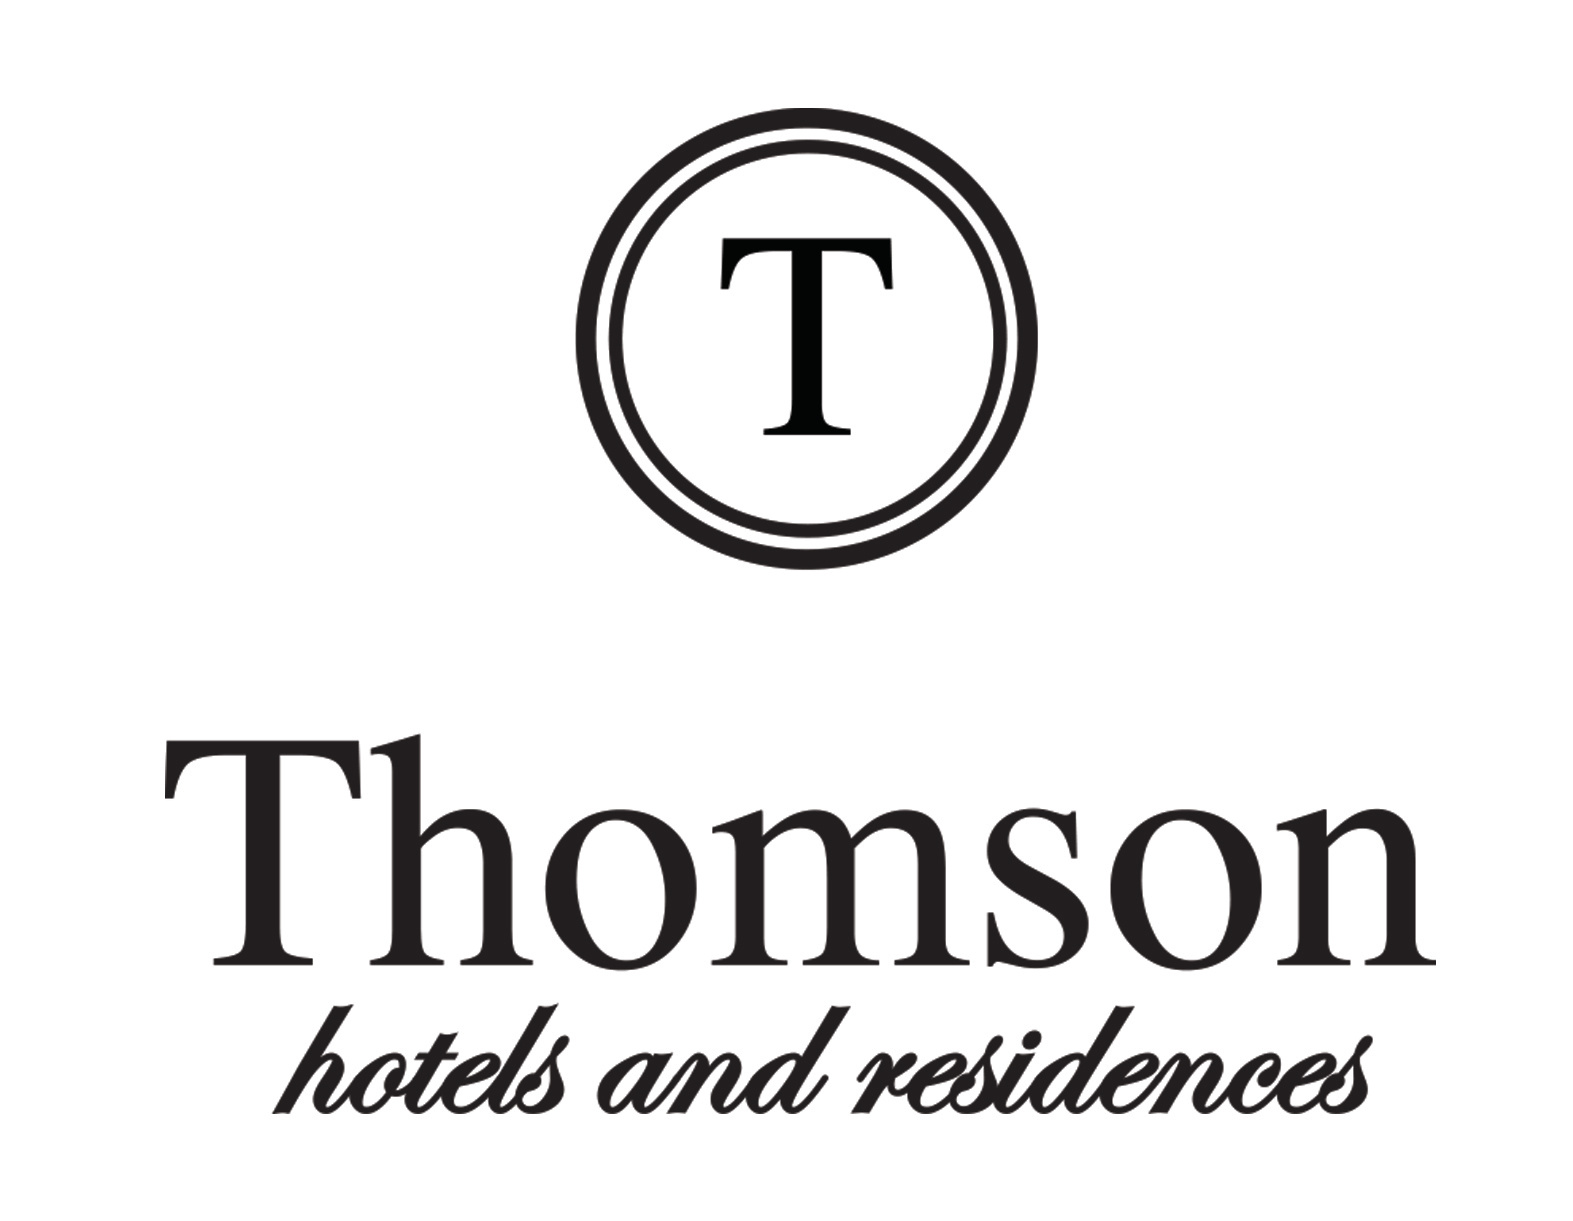 Thomson Hotels And Residences Bangkok